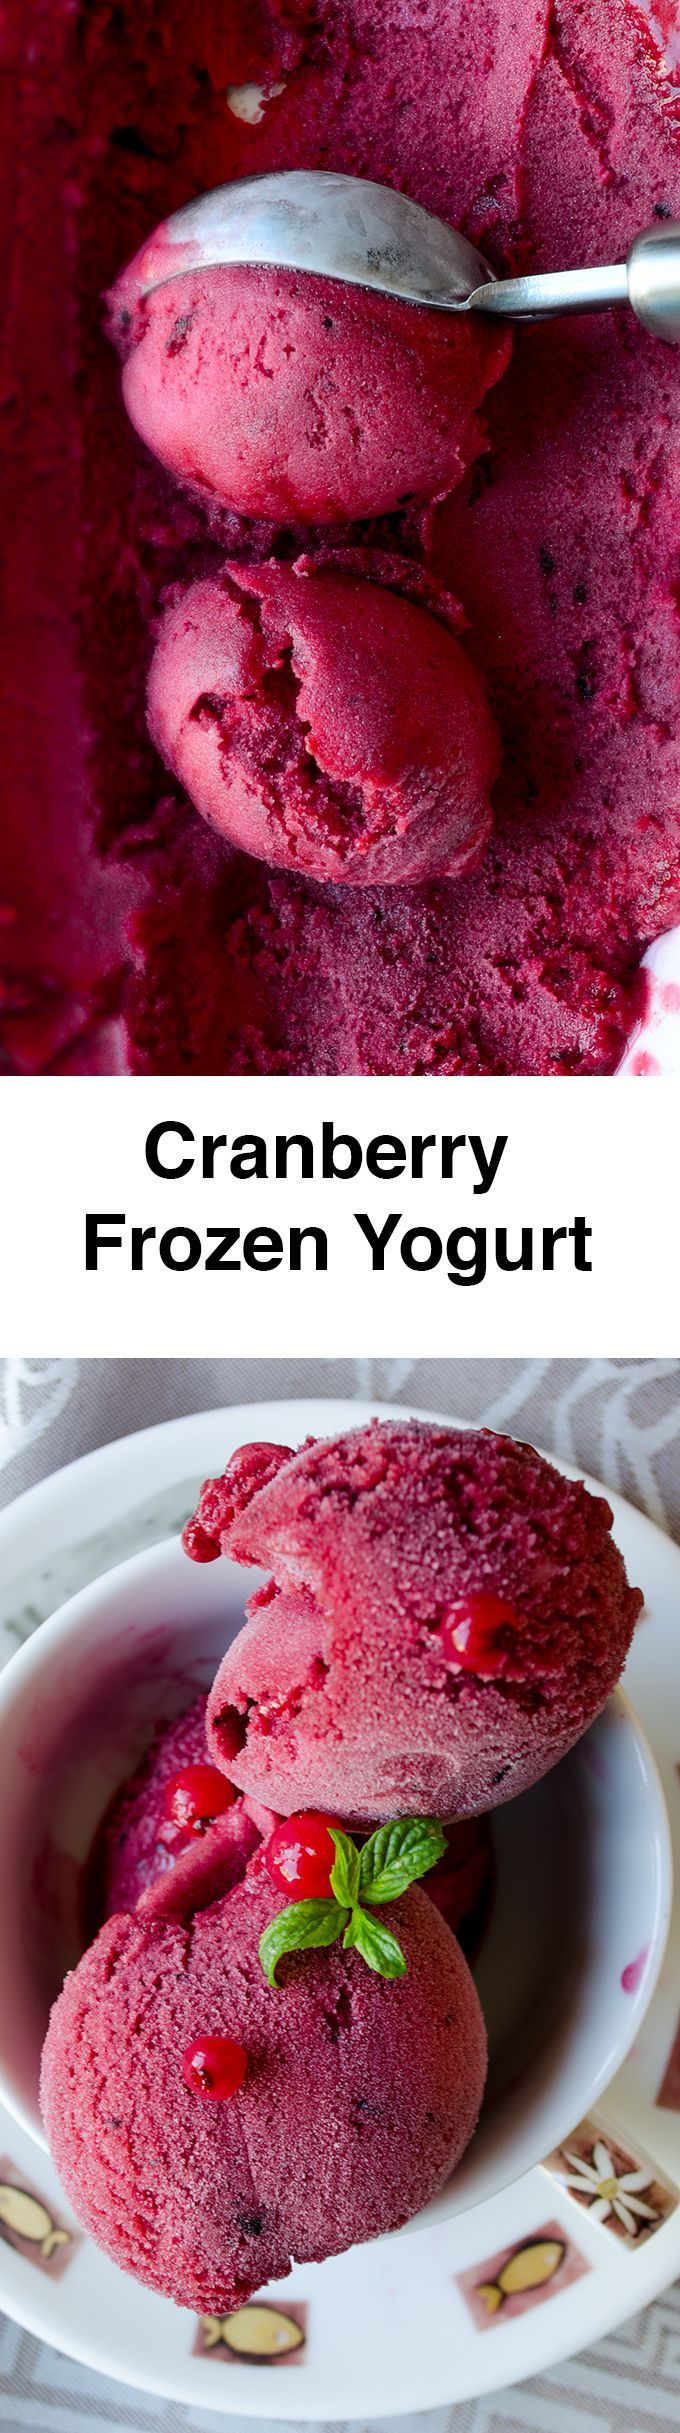 Cranberry Frozen Yogurt is the healthy alternative to ice cream. Beat the heat with this wonderfully refreshing and healthy dessert! Use any berry you like.